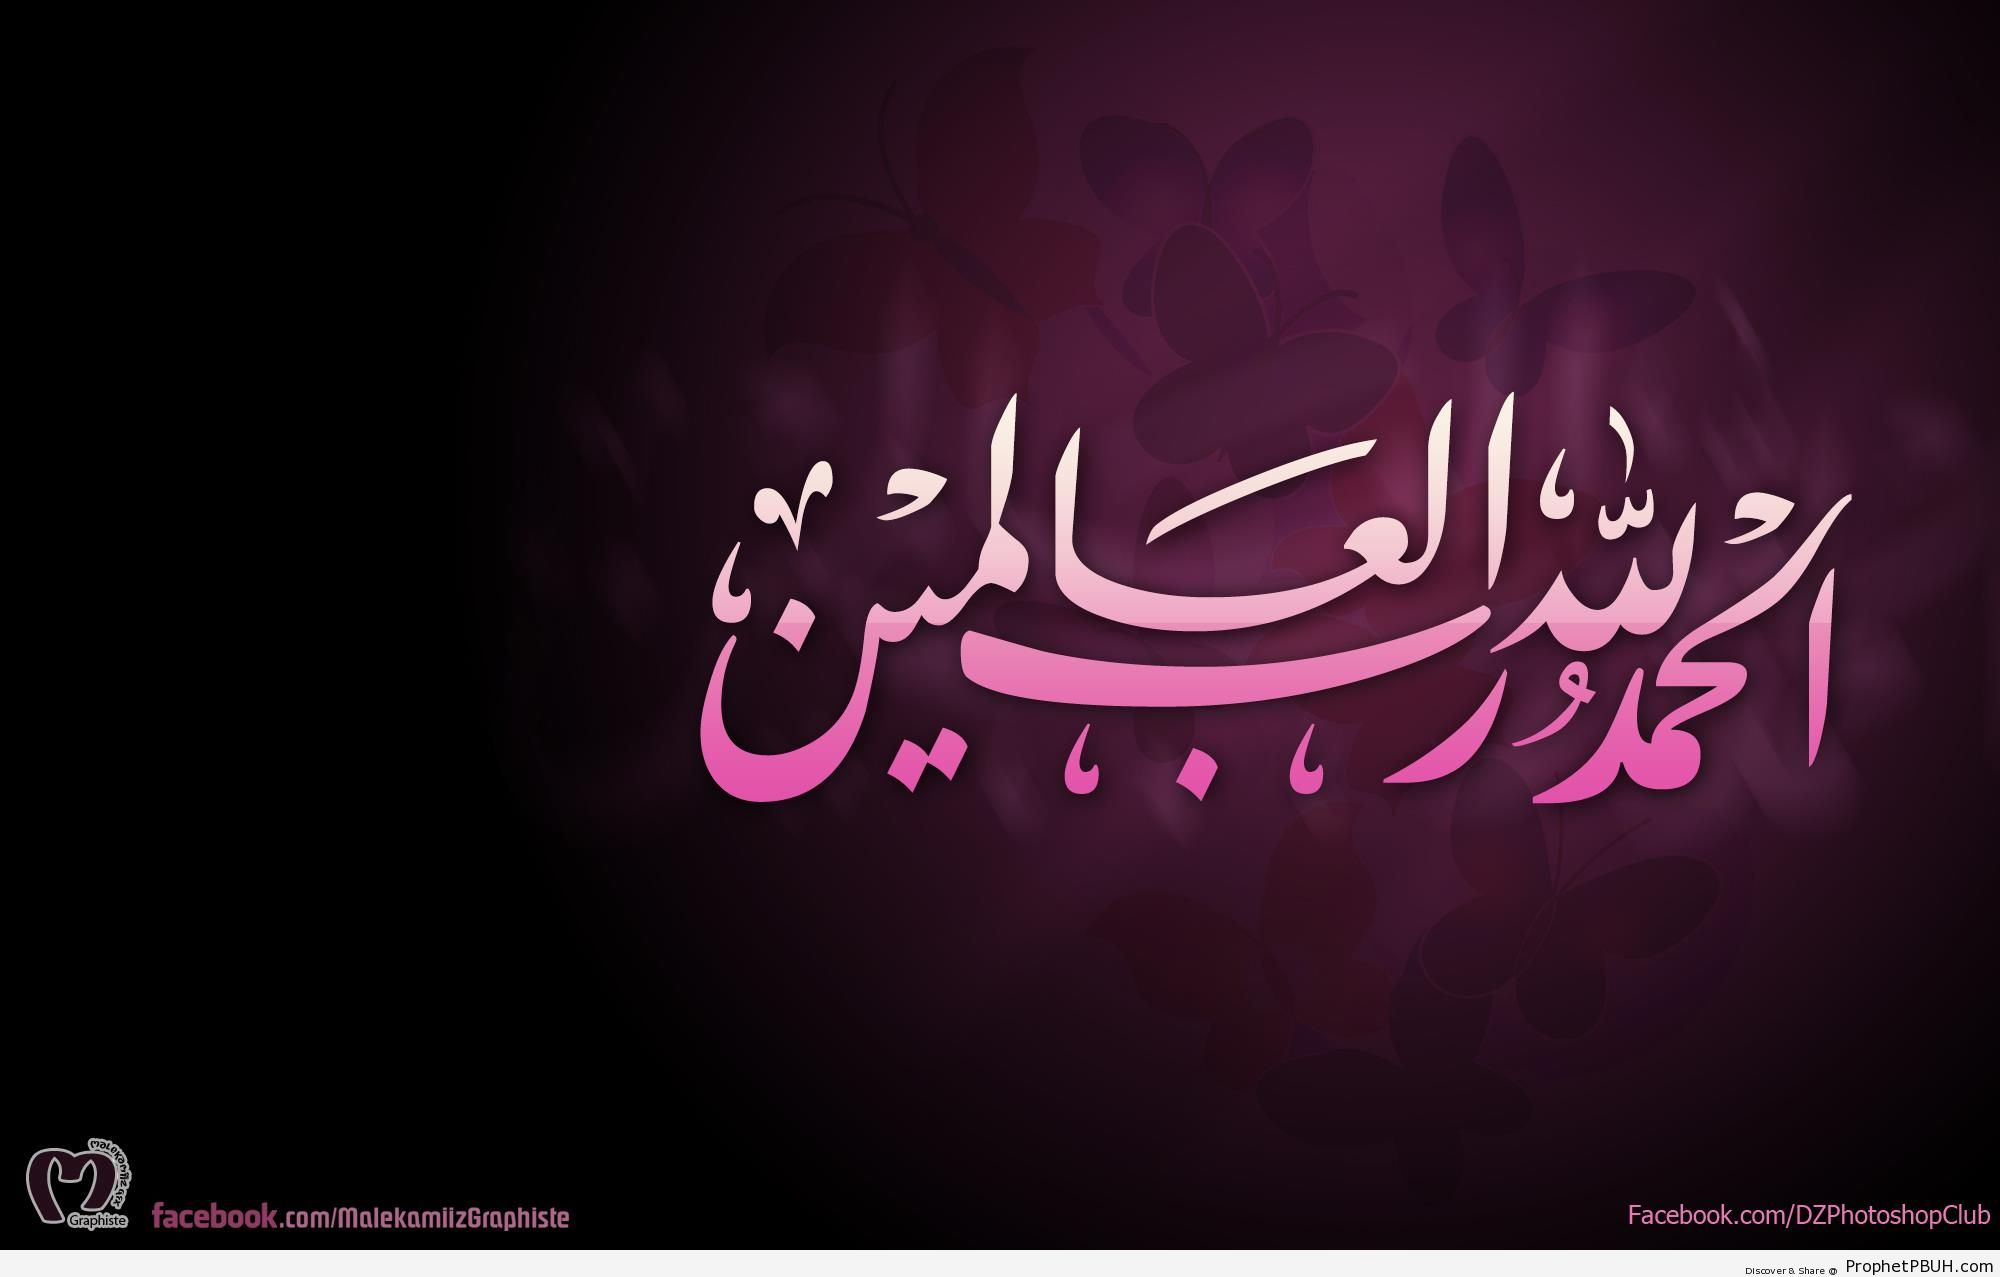 Alhamdulillah Wallpaper (Quran 1-2; Surat al-Fatihah and others) - Dhikr Words